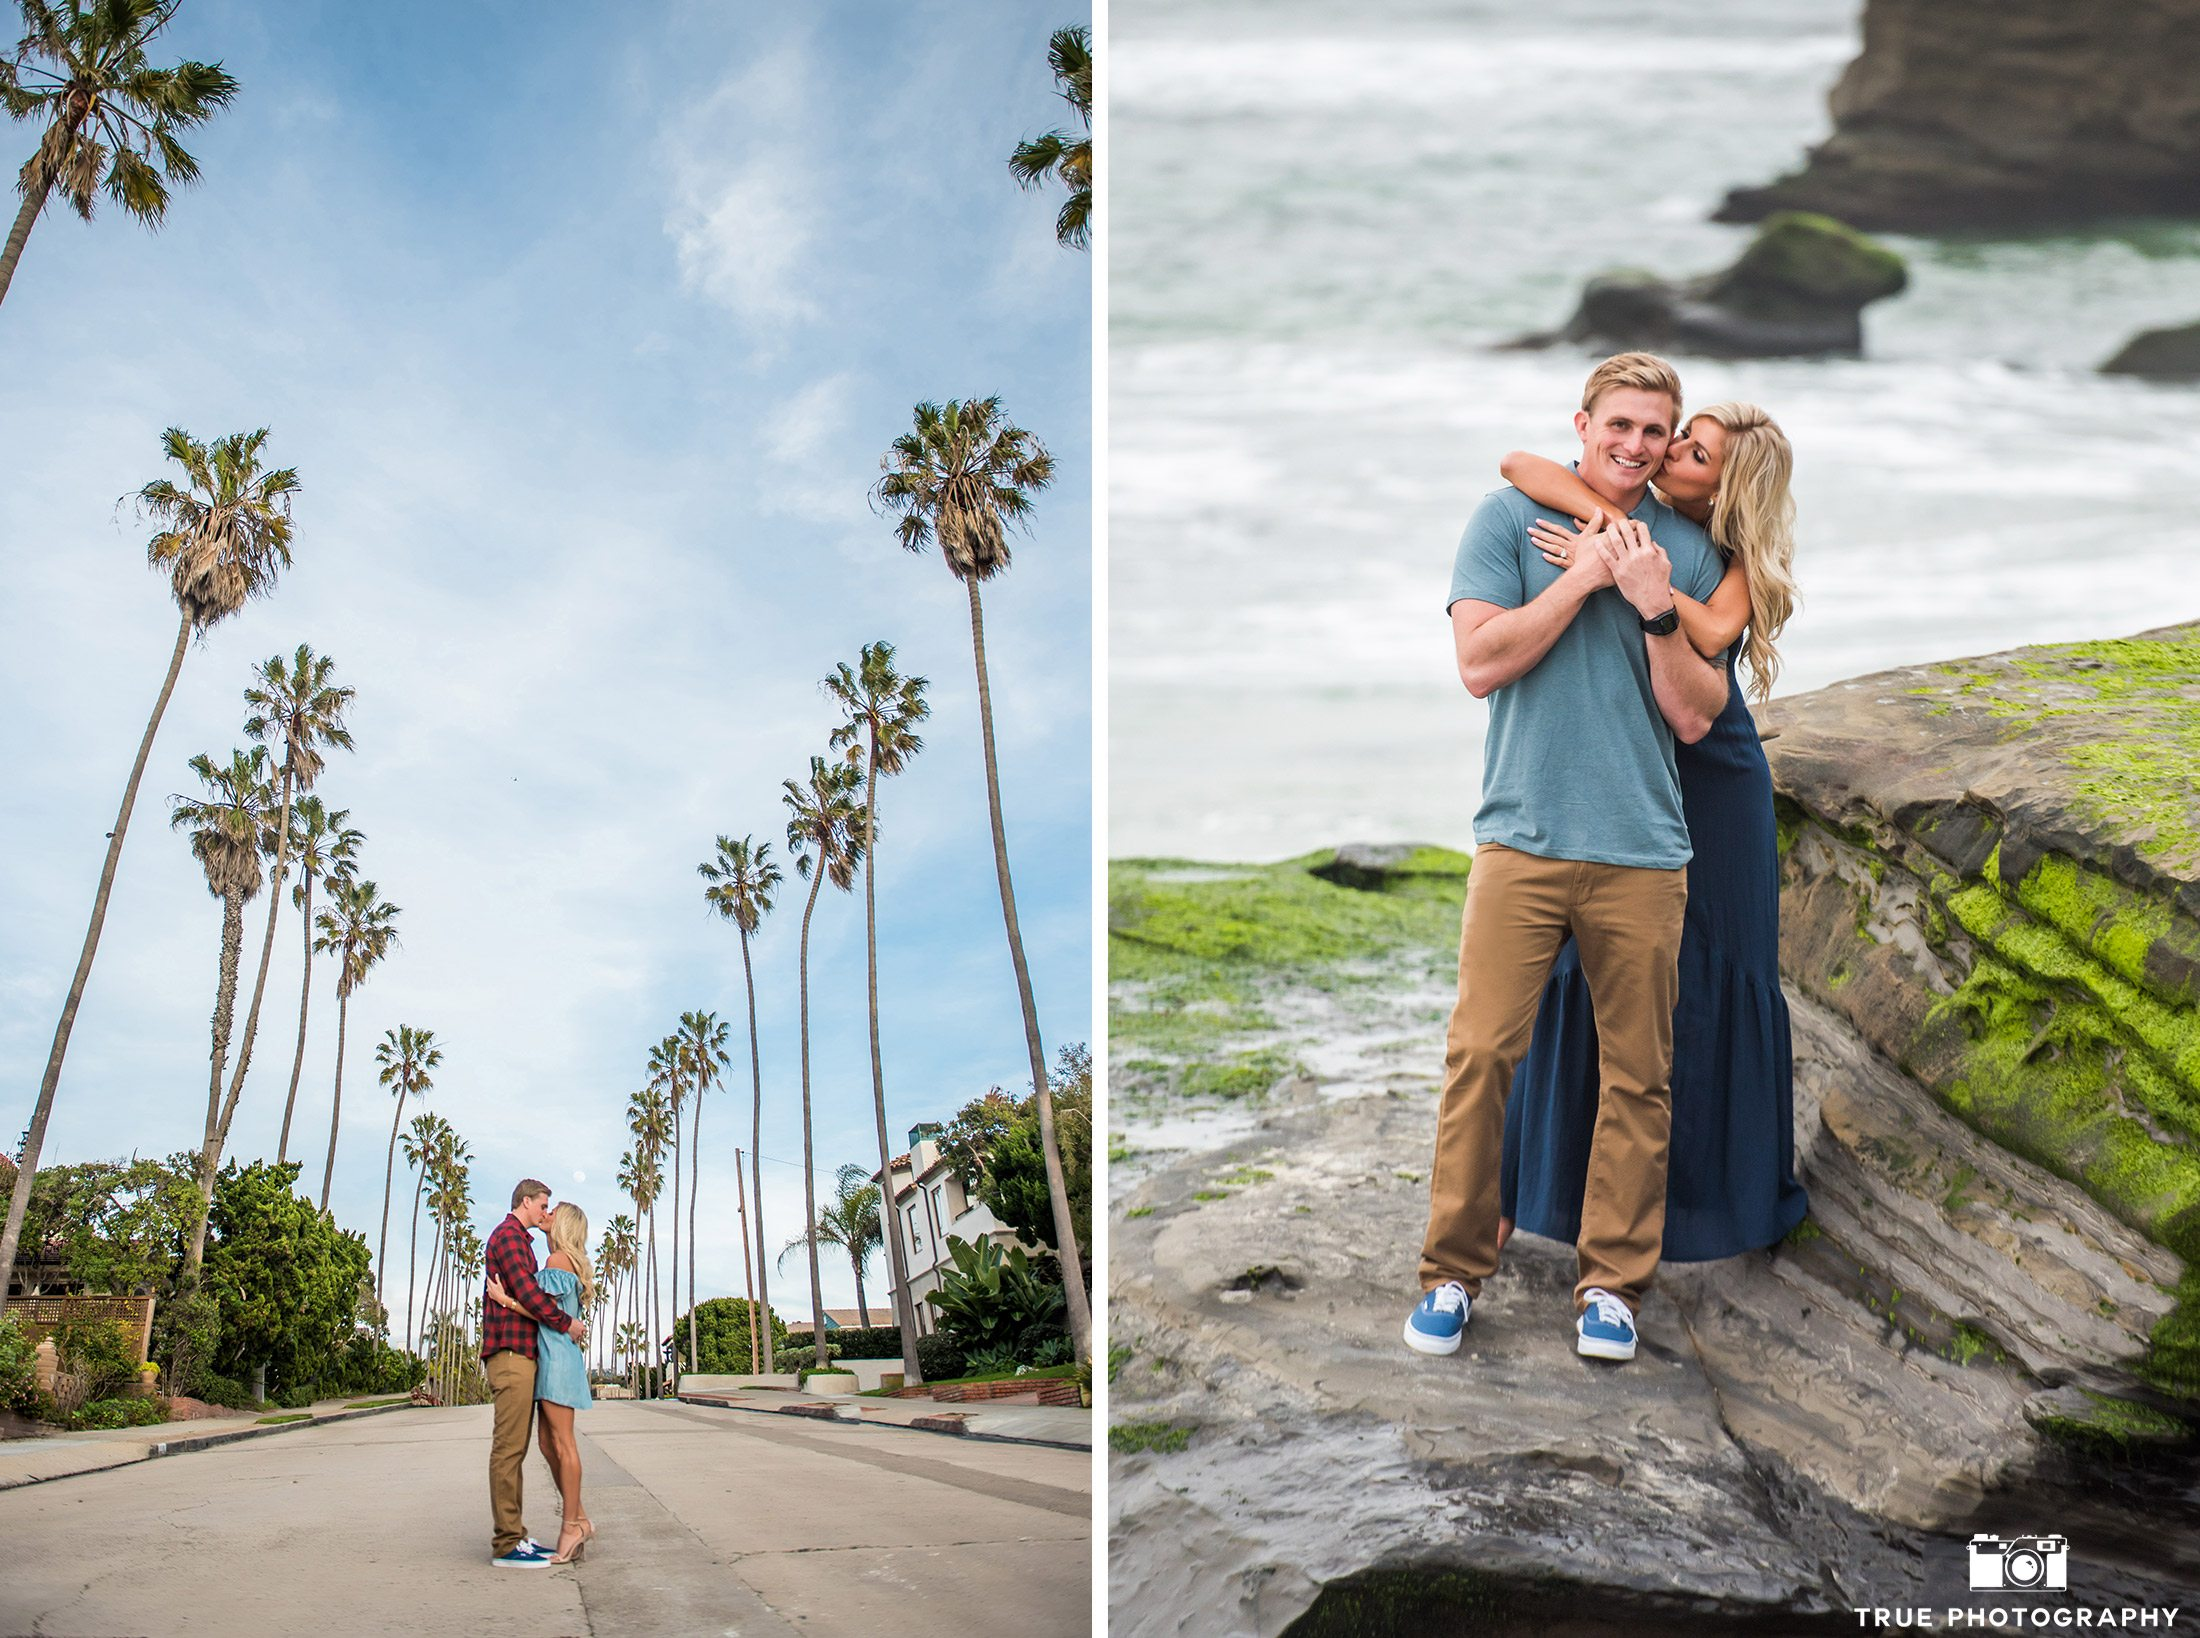 True Photography engagement locations